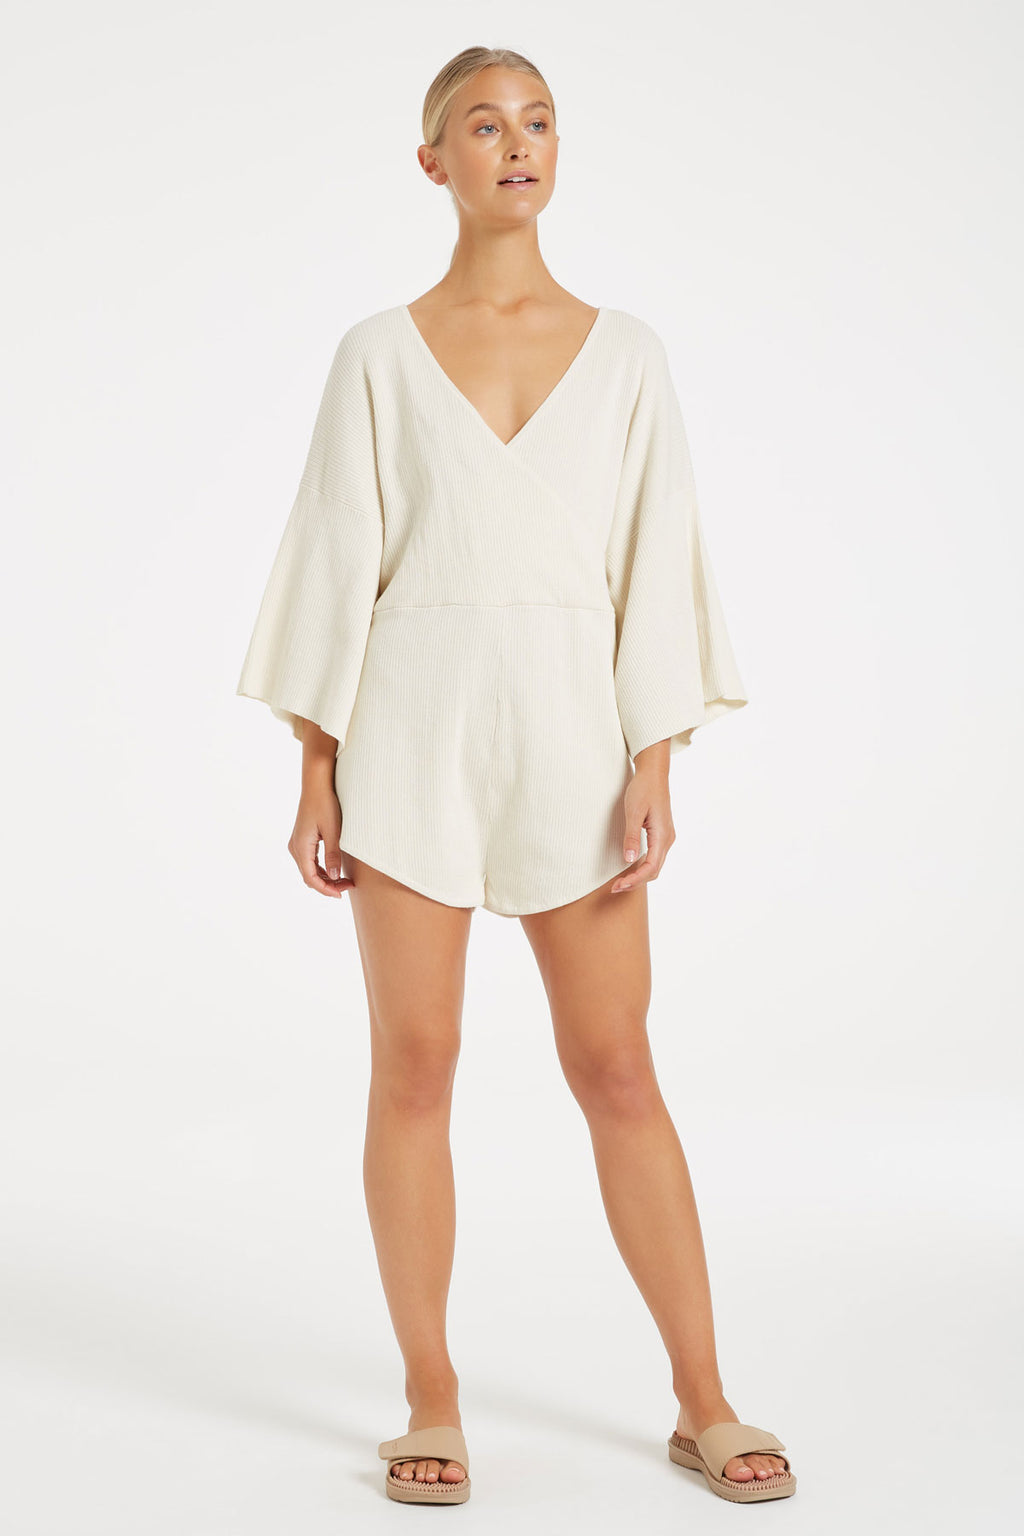 Breathe Knit Playsuit - Cream Ribbed